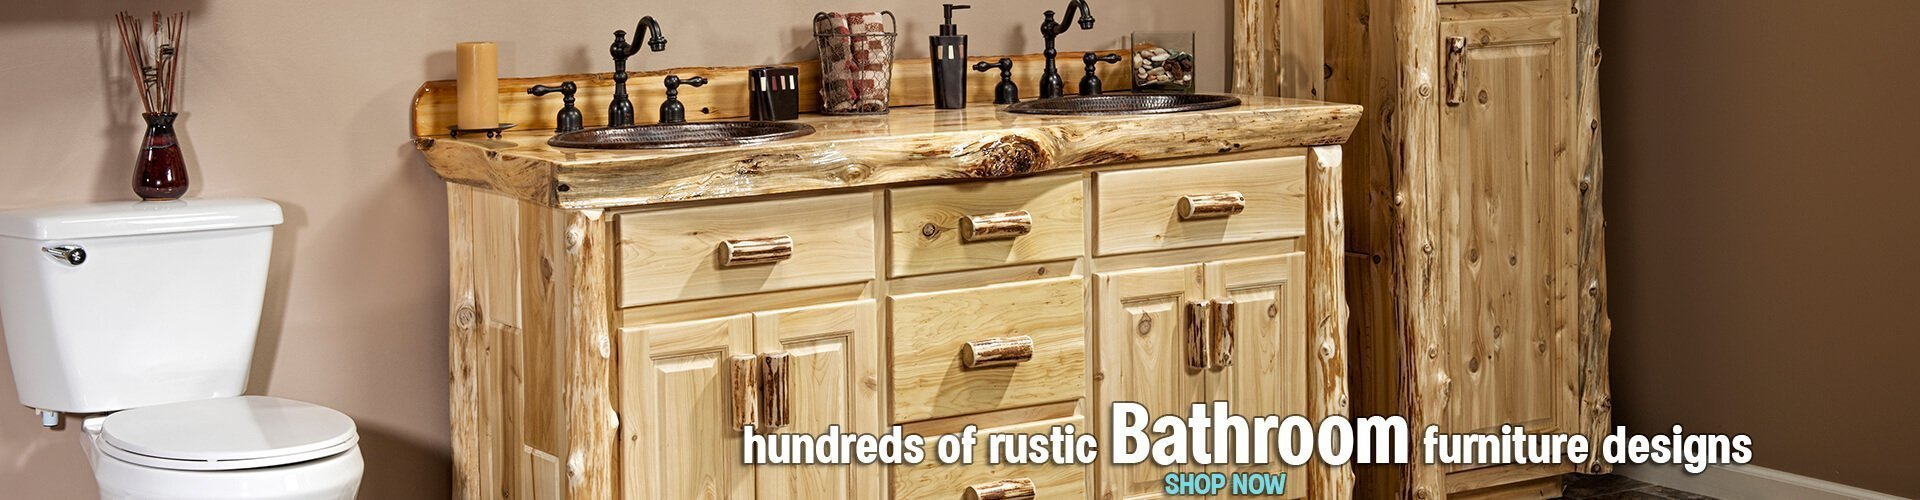 Rustic Bathroom Vanities and Linen Closets